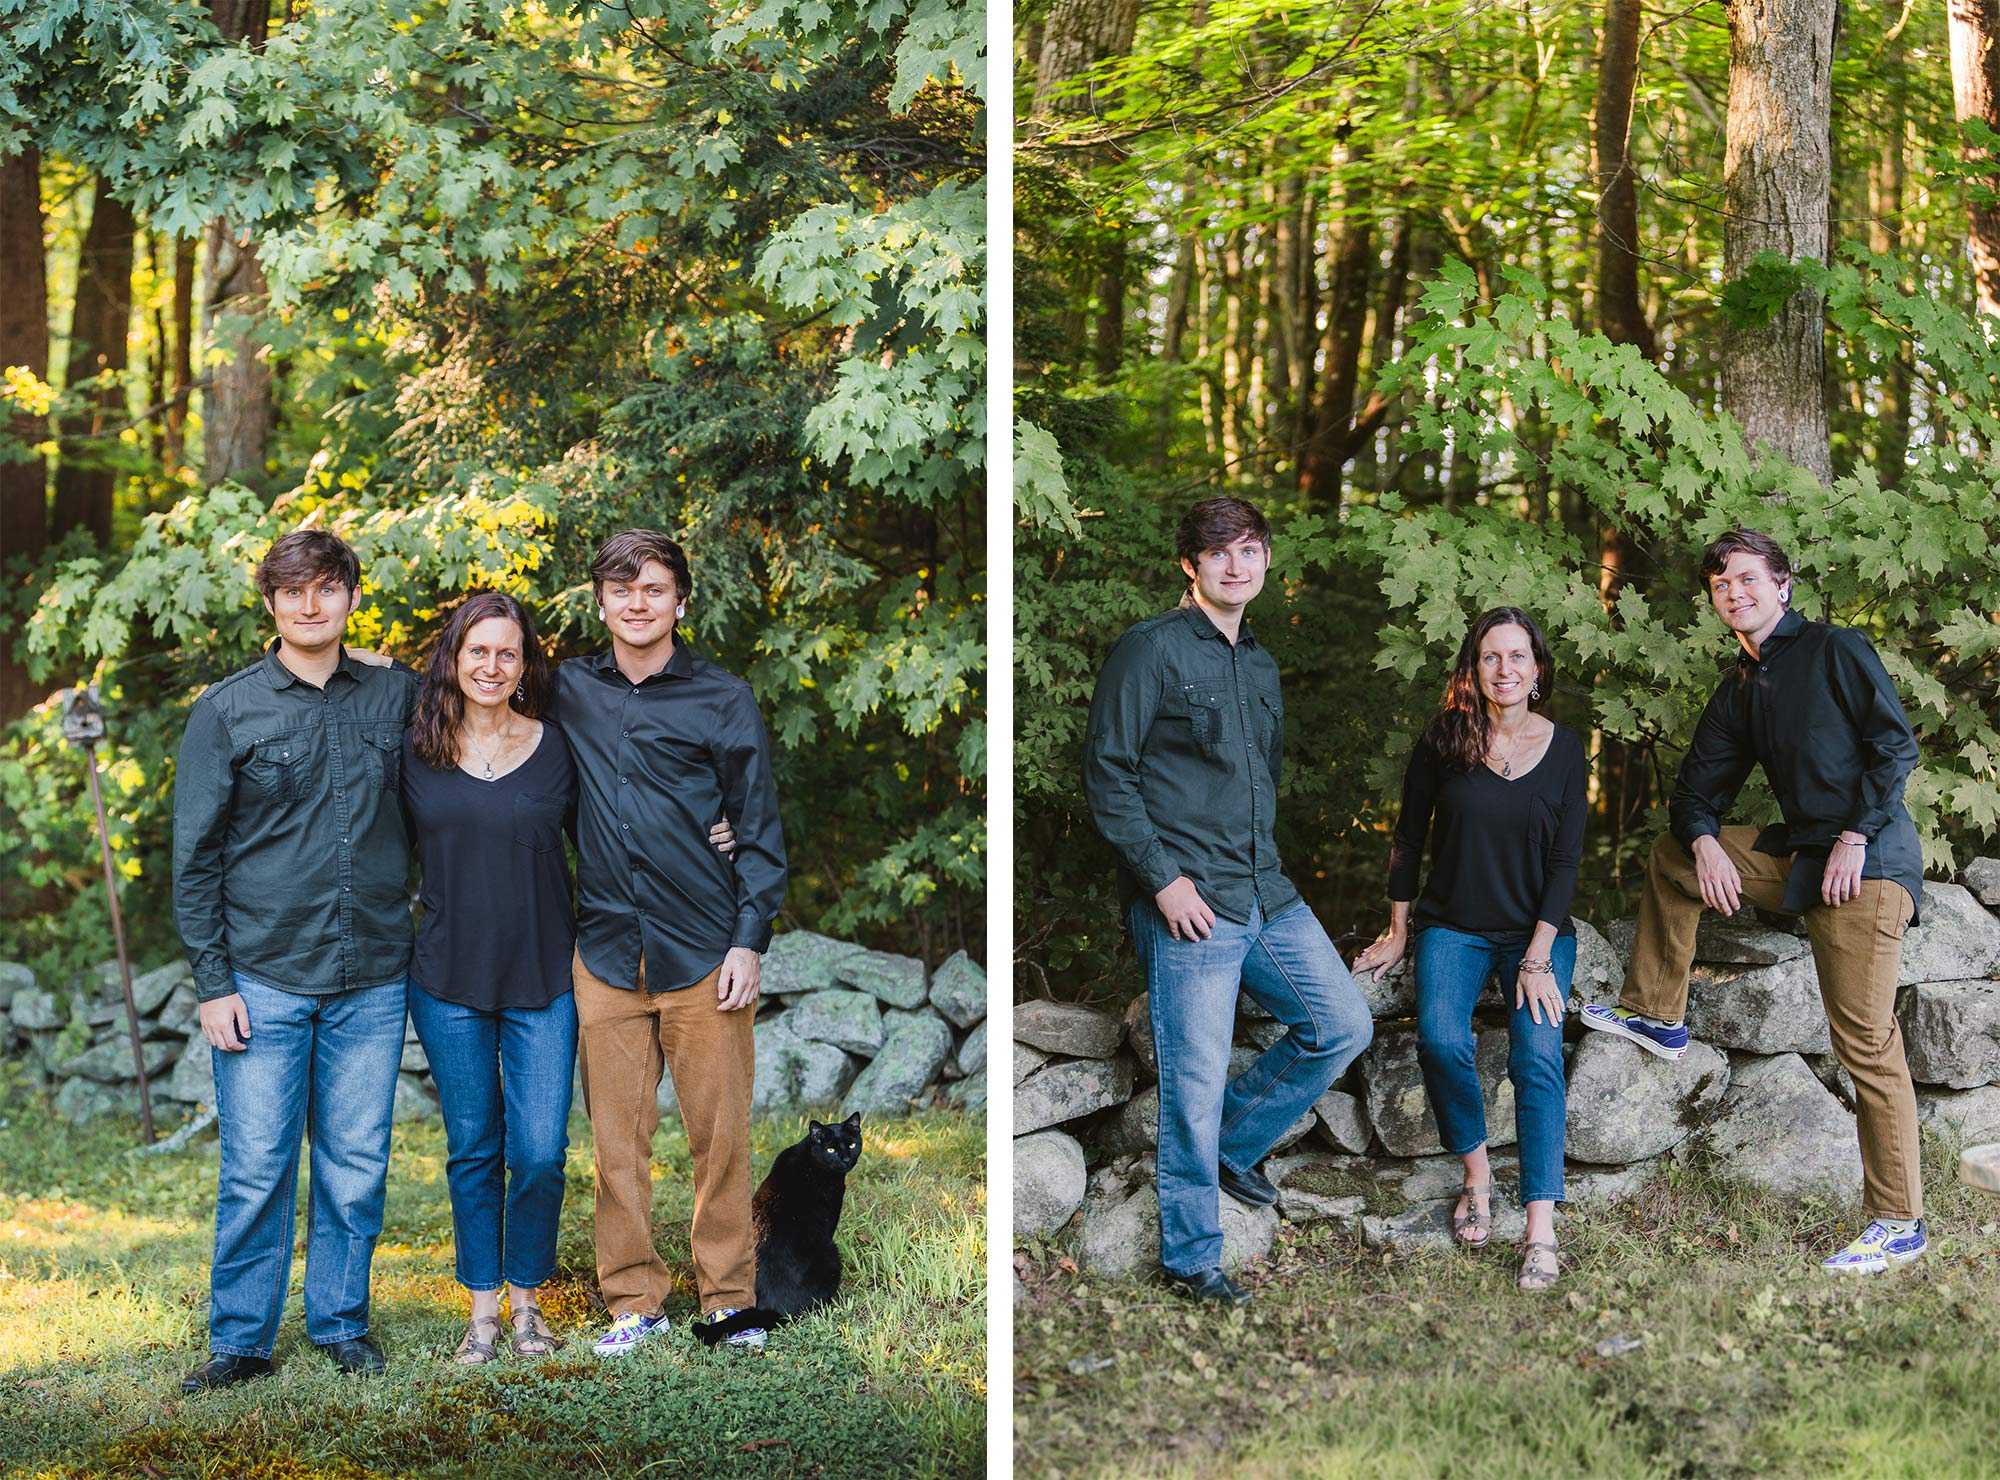 Exeter Family Portrait Photographer | Stephen Grant Photography